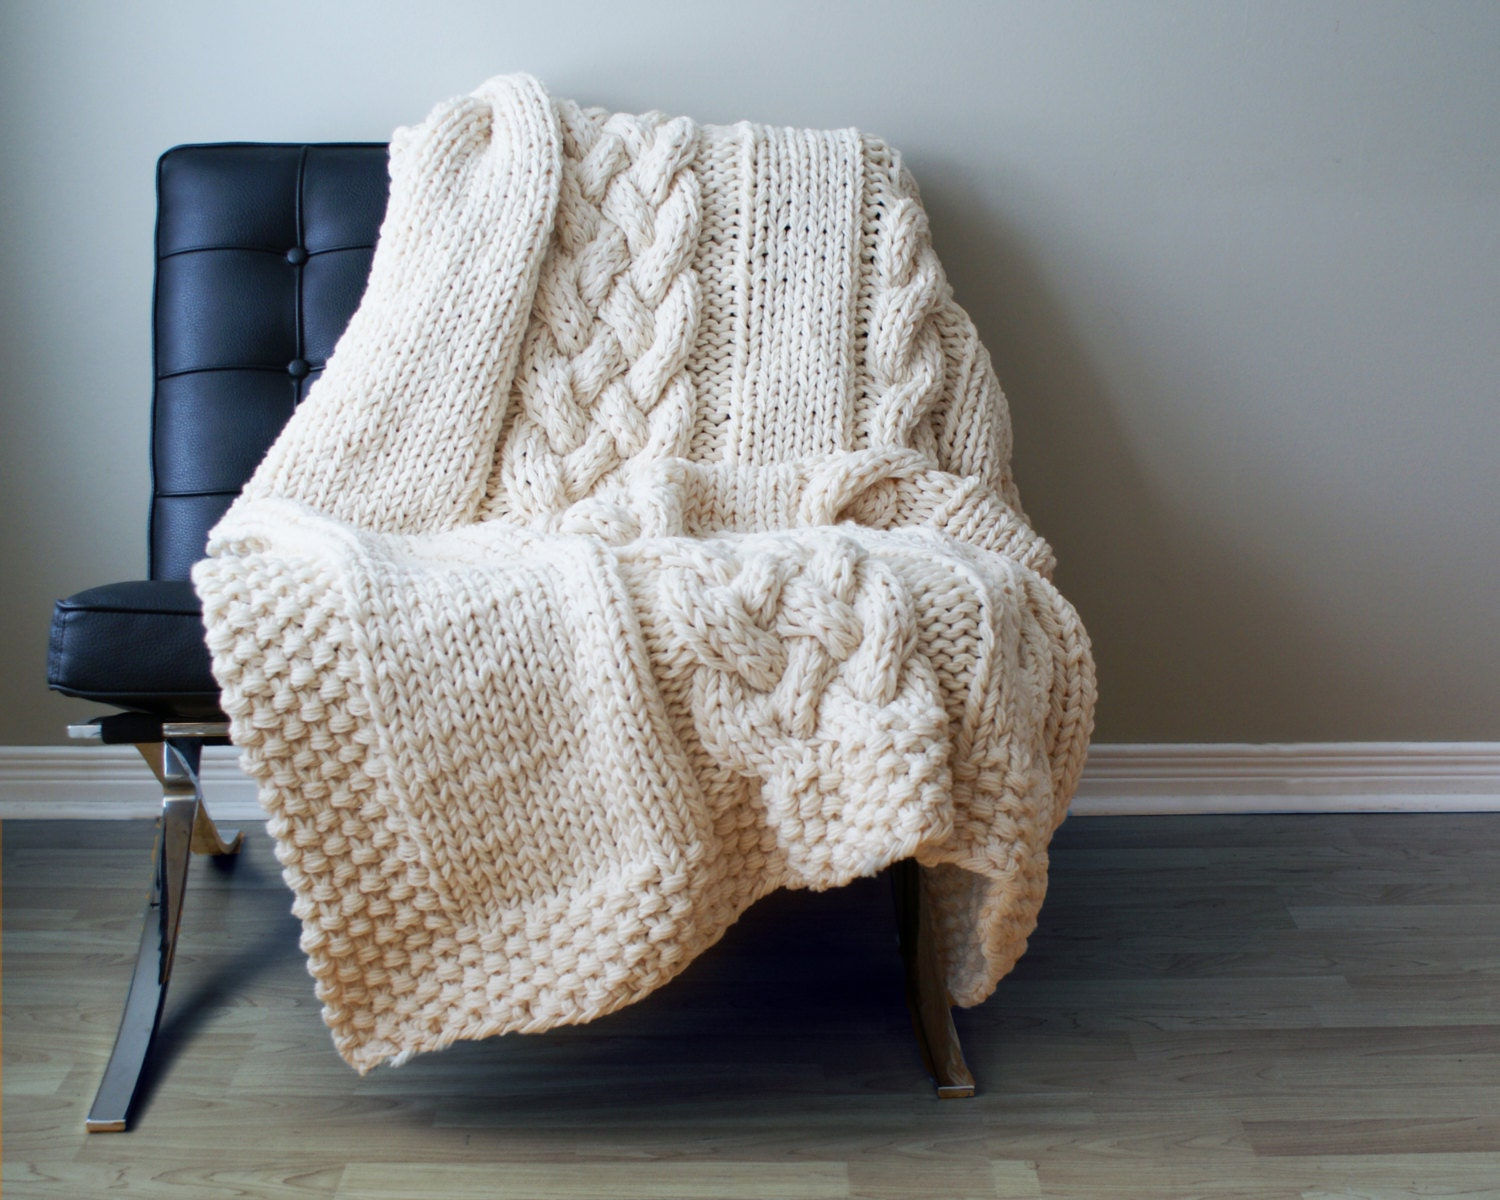 Knitting Pattern For A Throw Blanket : DIY Knitting PATTERN Throw Blanket / Rug Super Chunky Double